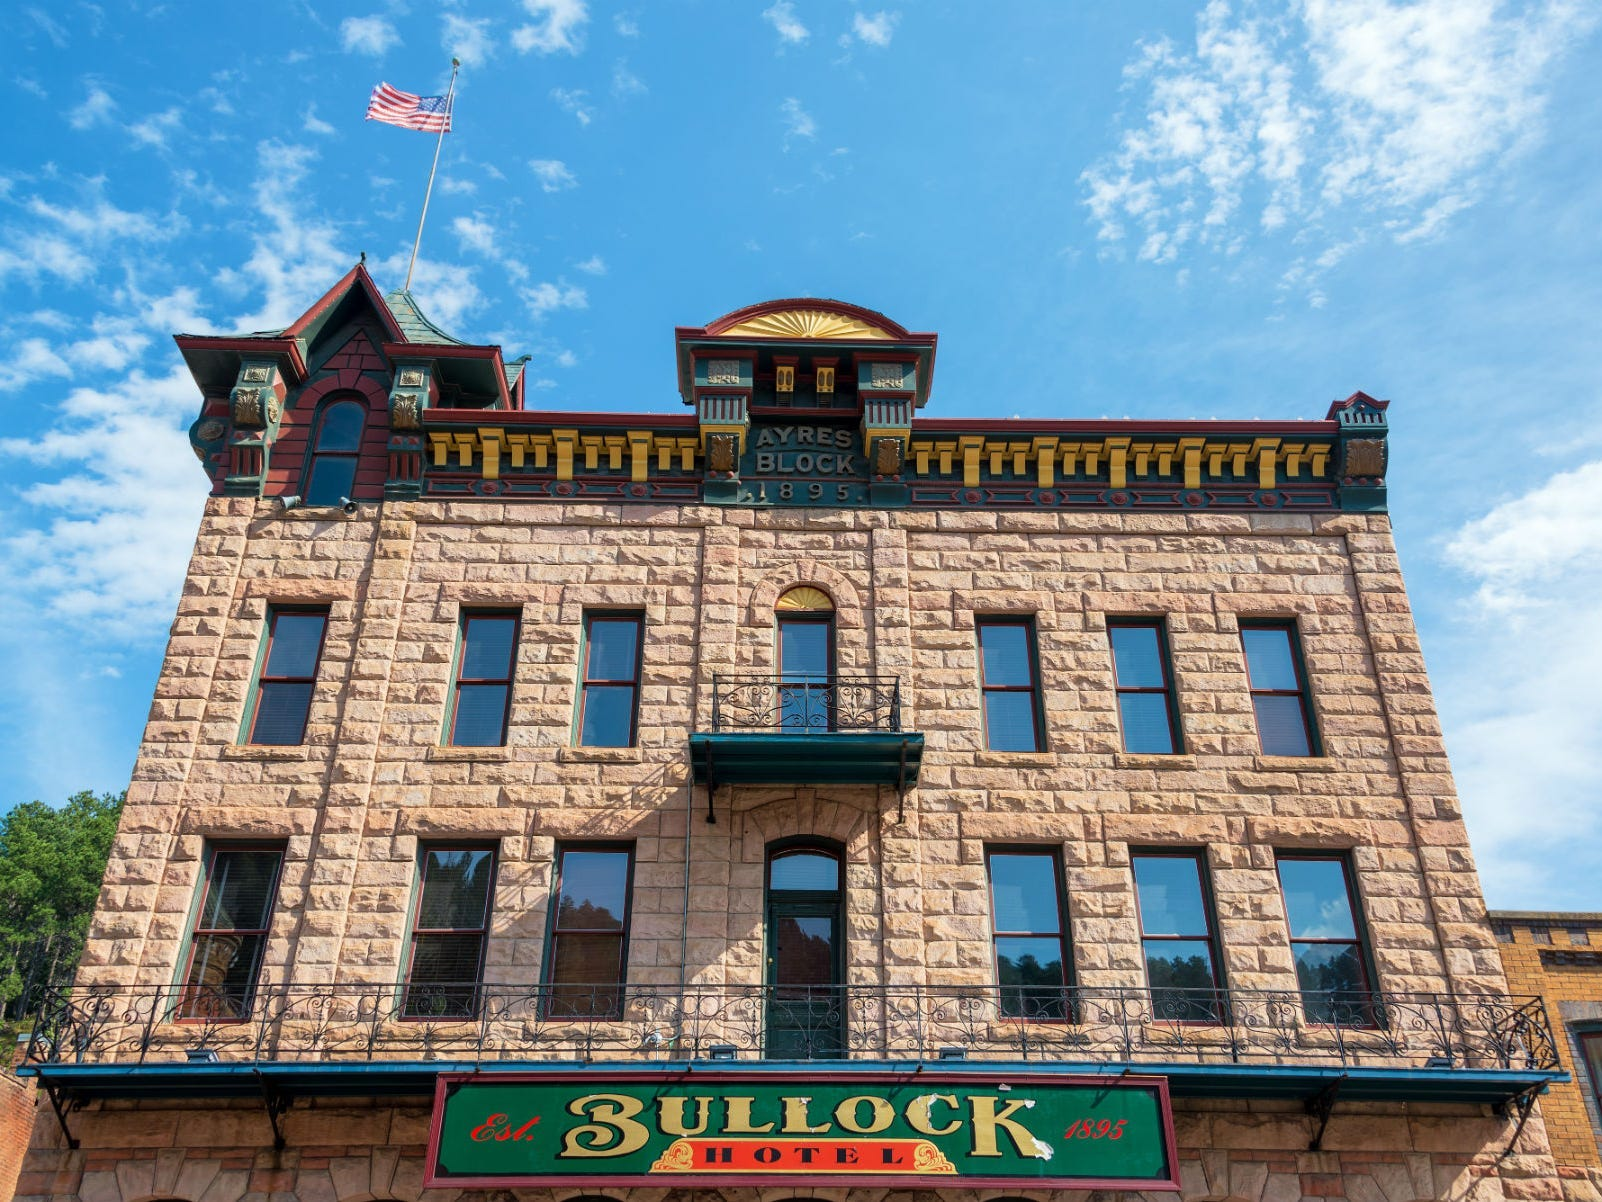 Slide 42 of 51: The Bullock Hotel in Deadwood, South Dakota, is reportedly haunted by its original owner, Seth Bullock. According to the hotel's website, many guests feel a ghostly presence in the hallways on the second and third floors of the hotel.